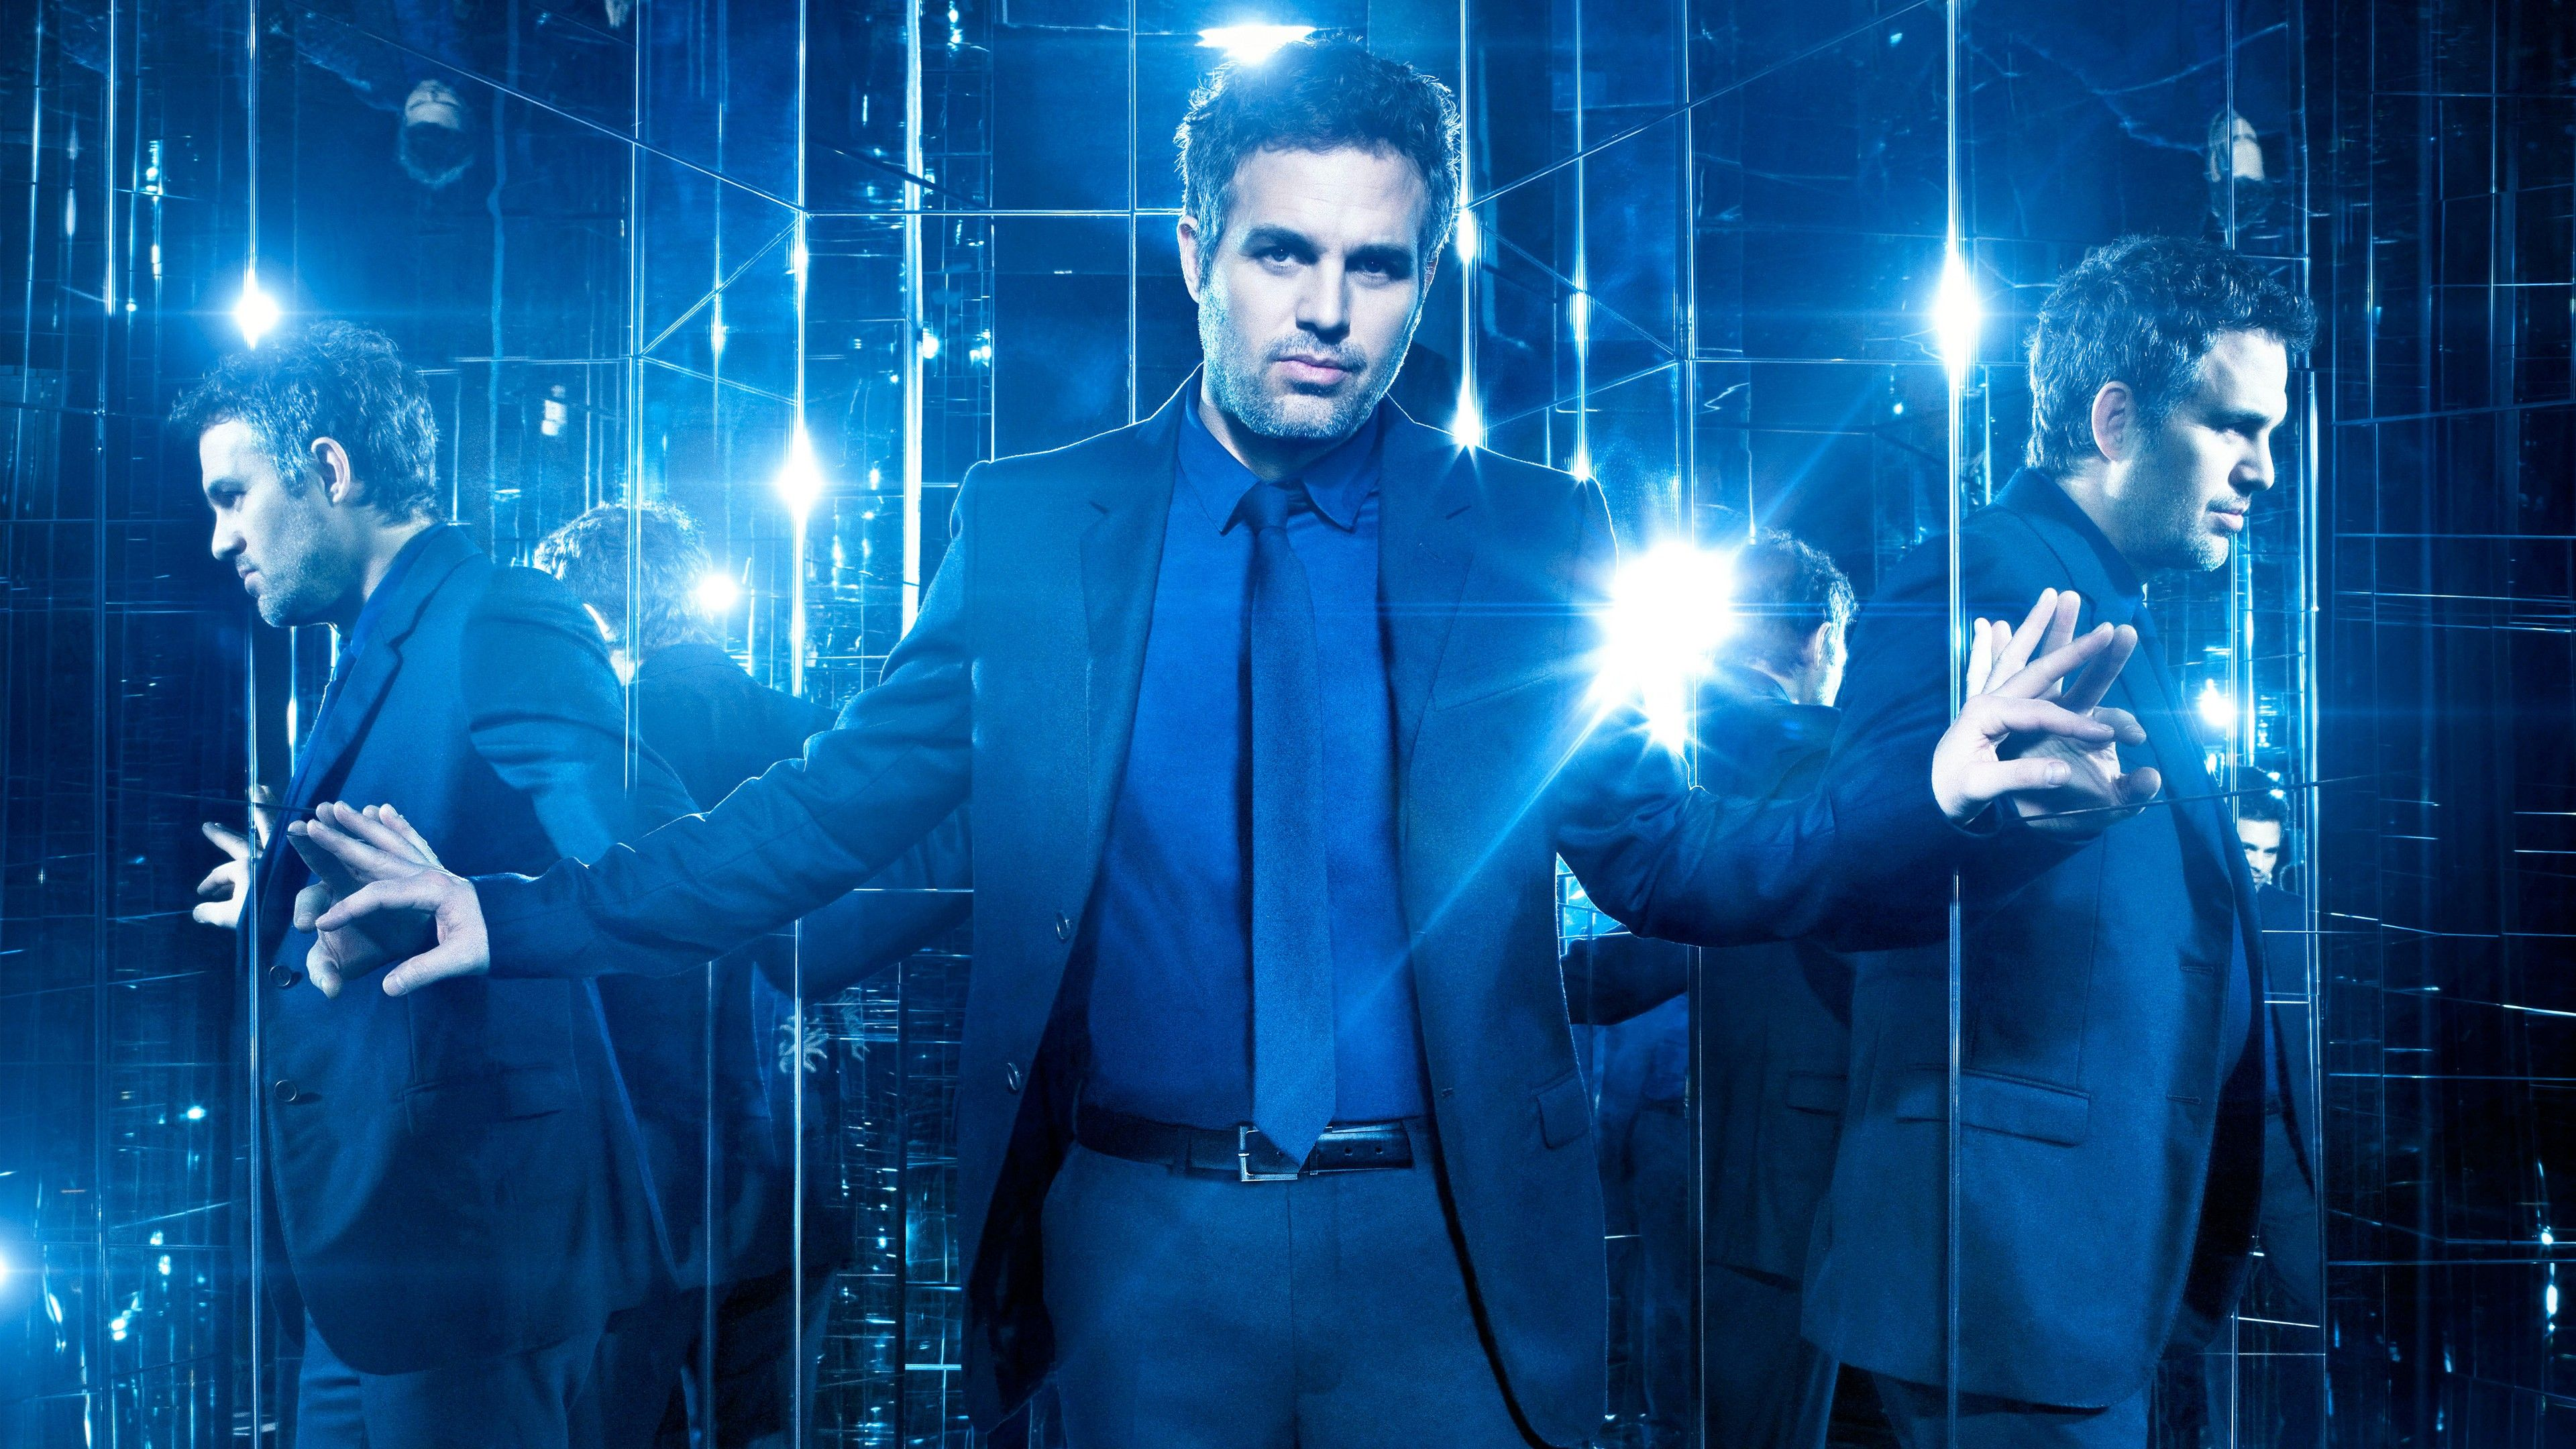 Mark Ruffalo Now You See Me 2 Wallpapers